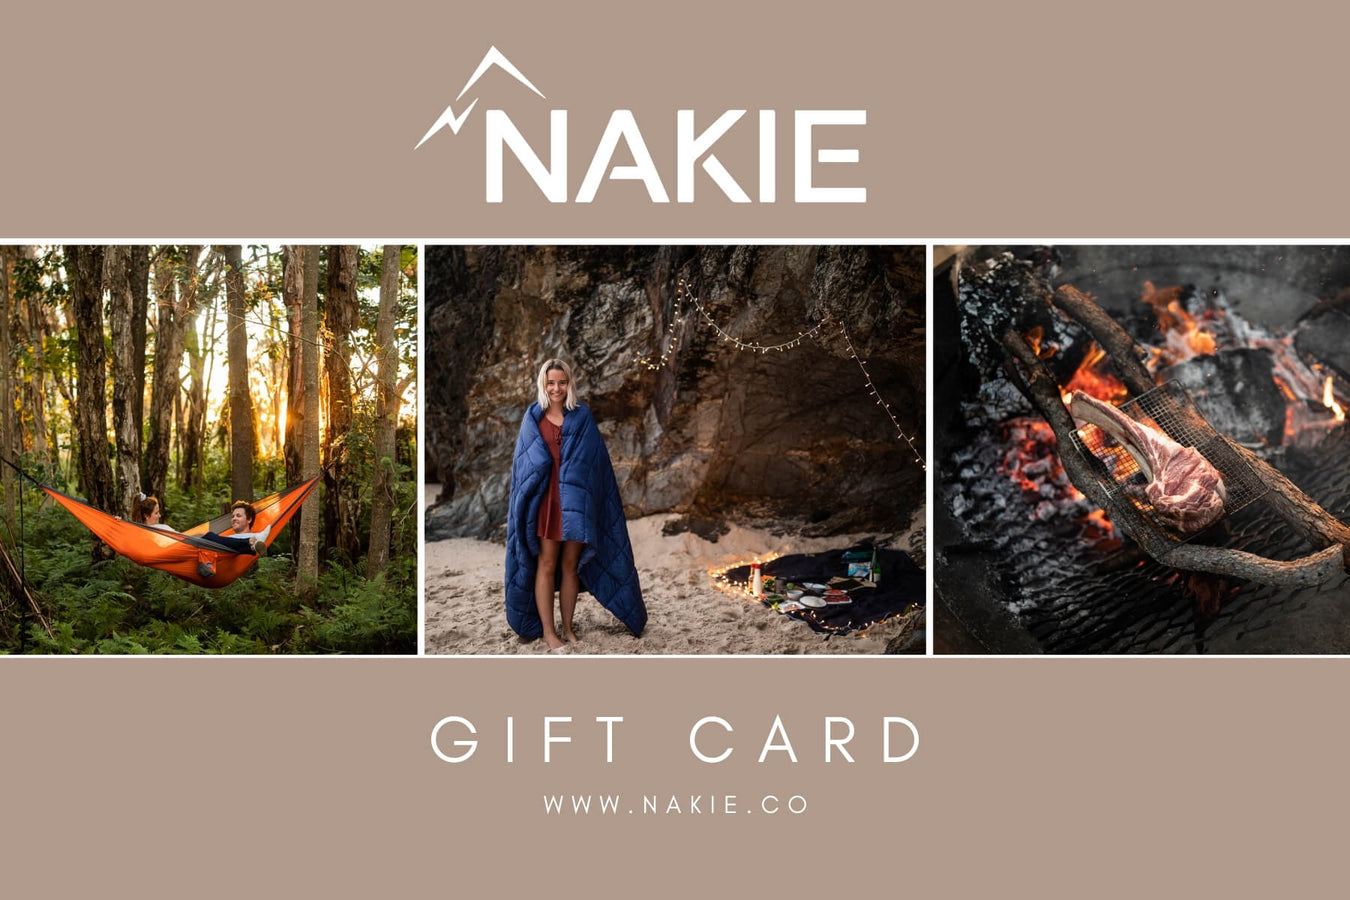 Gift Cards - Nakie